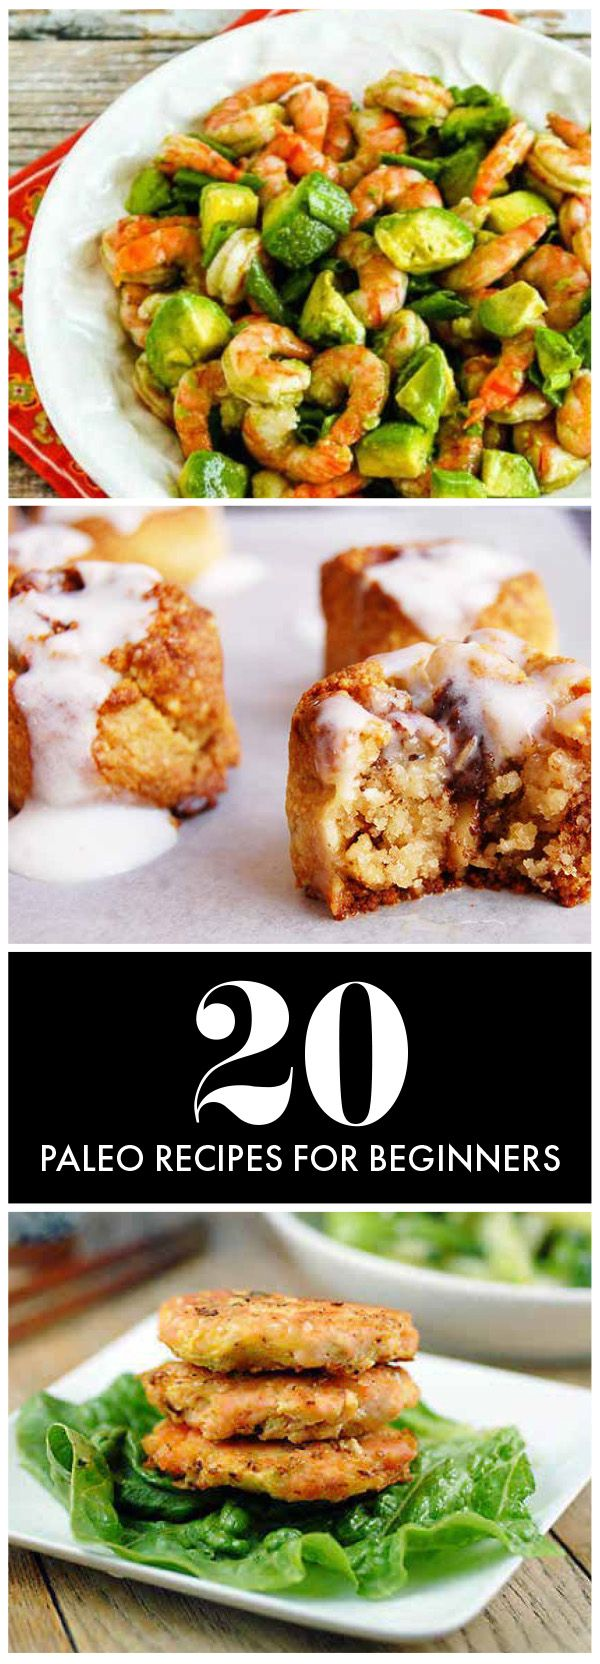 20 of the best paleo recipes that are meal prep friendly to get you started toward your diet goals. Womanista.com